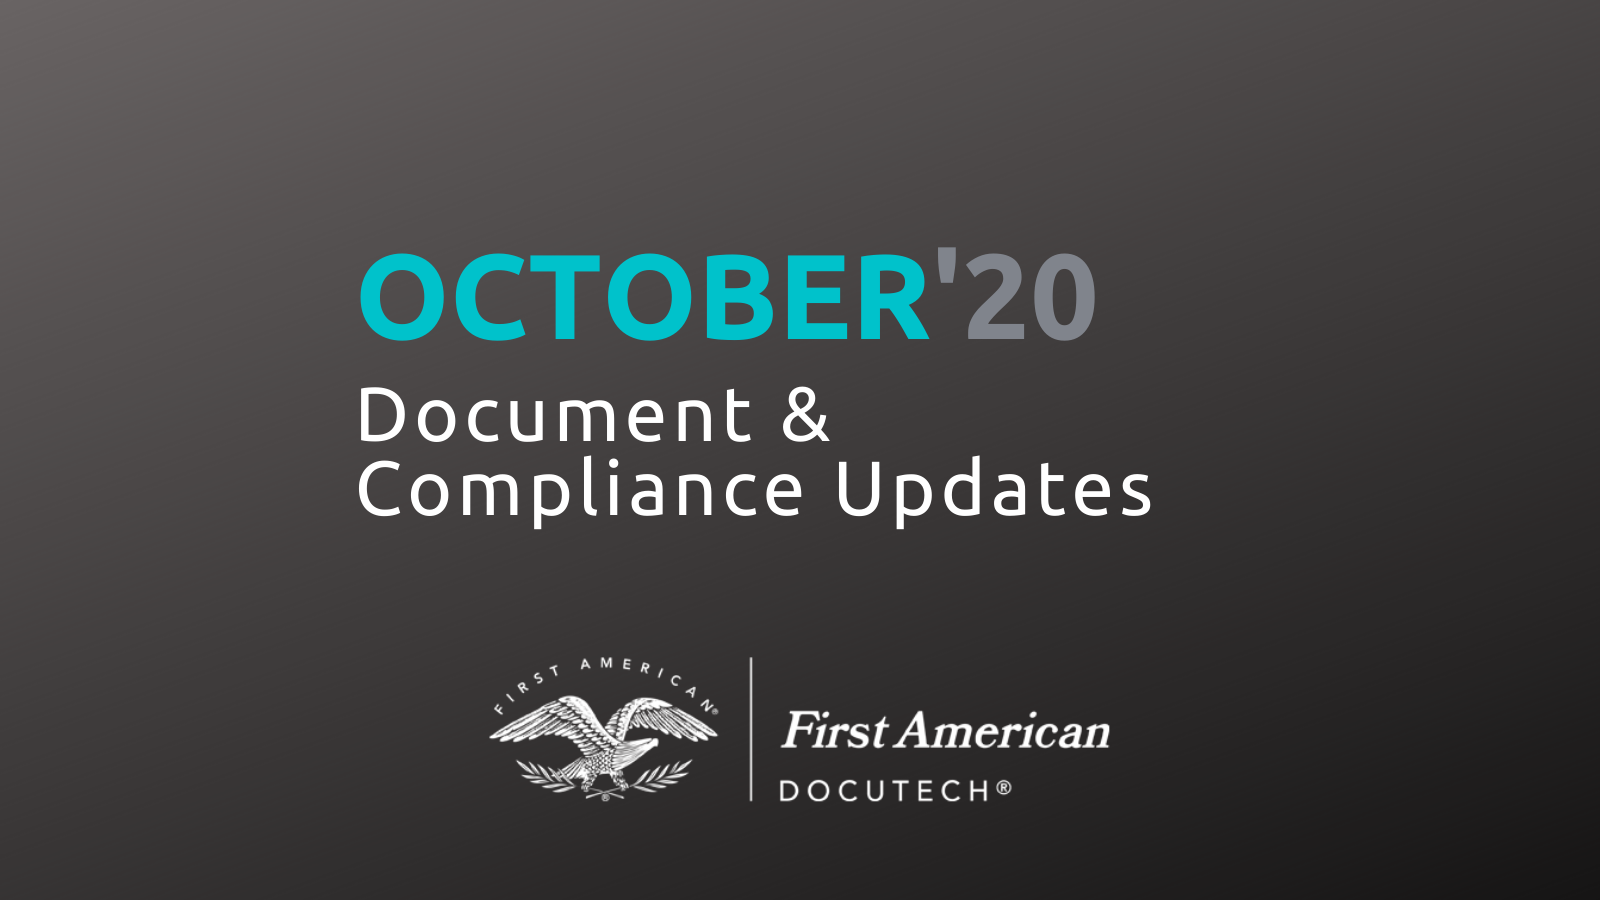 October Compliance Roundup